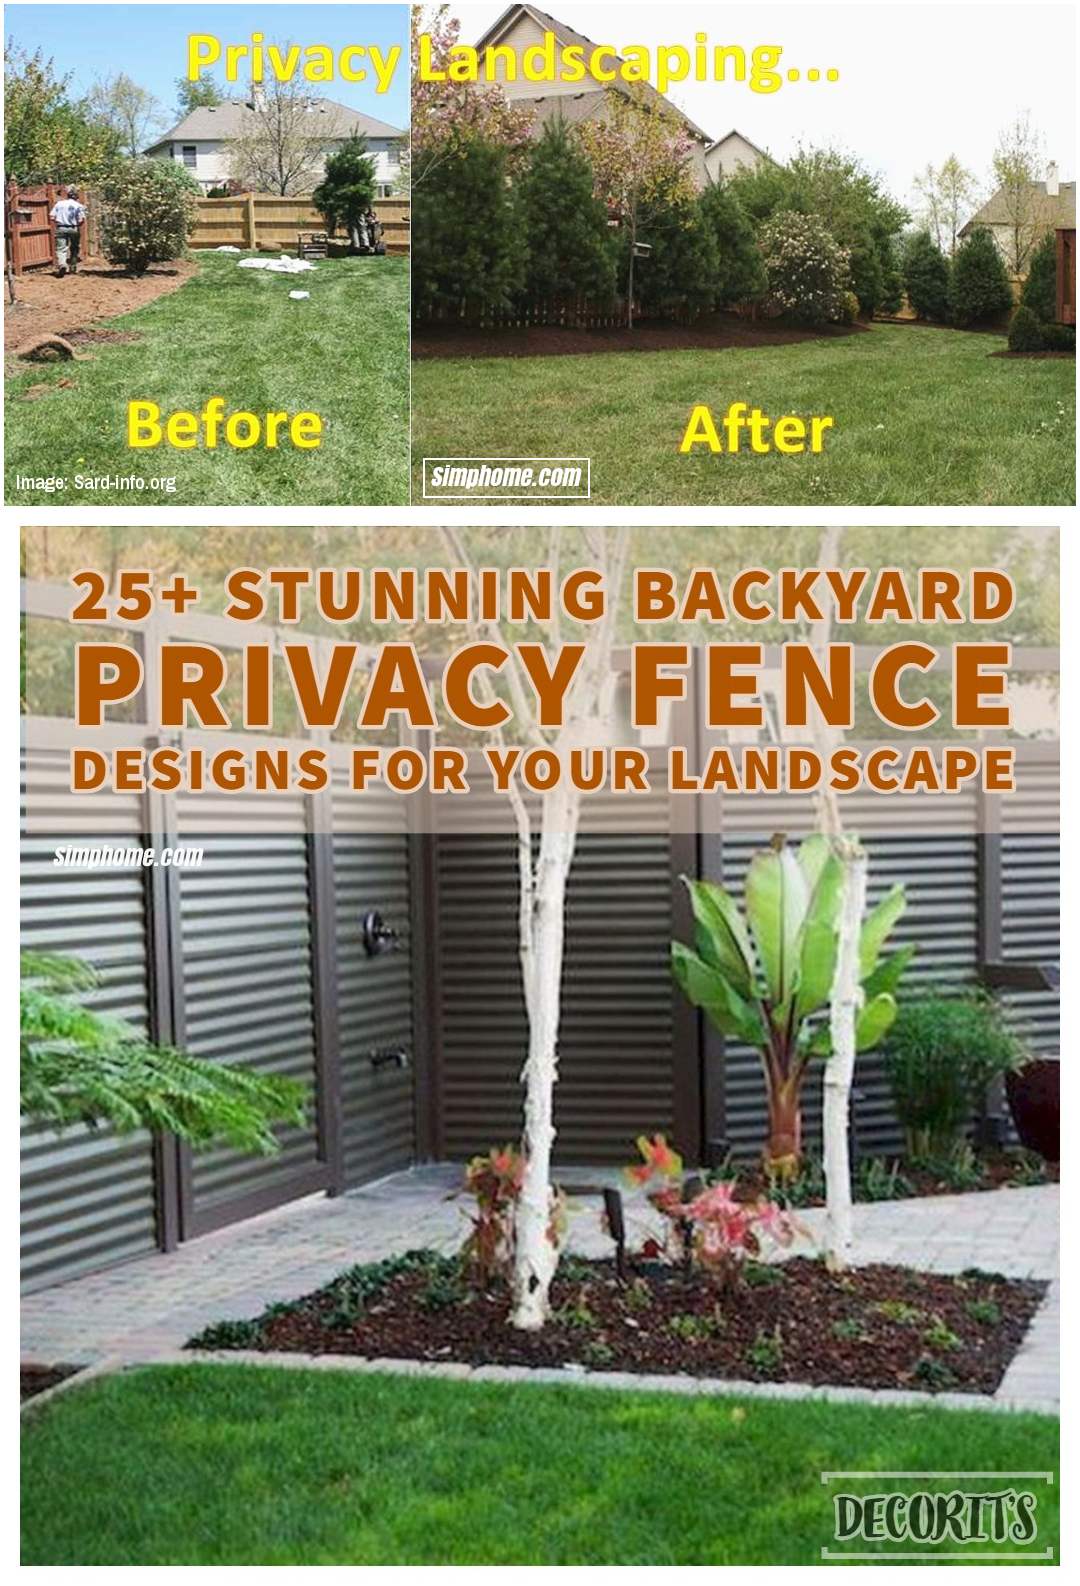 9+ Smart Concepts How to Make Backyard Privacy Landscaping Ideas